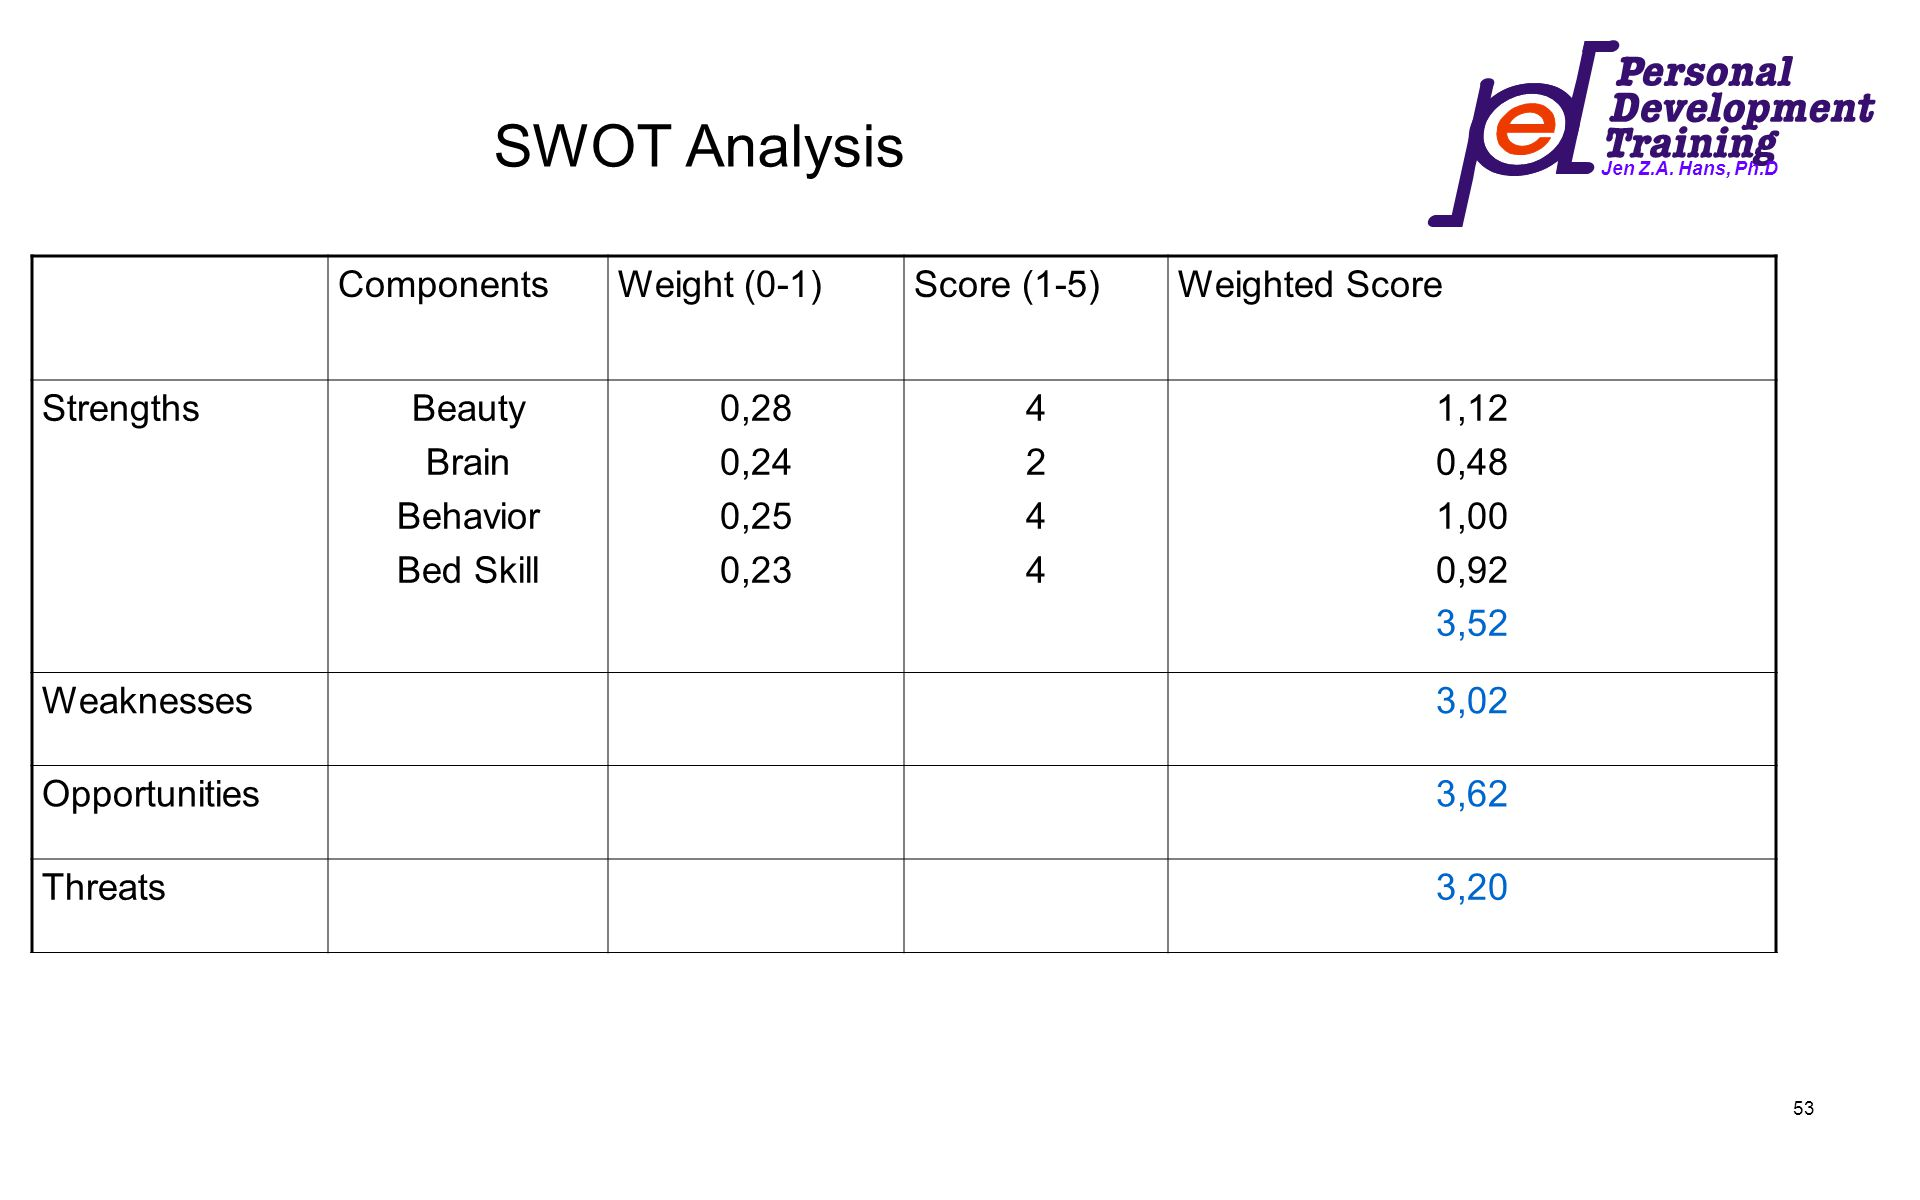 Jen Z.A. Hans, Ph.D 53 SWOT Analysis ComponentsWeight (0-1)Score (1-5)Weighted Score StrengthsBeauty Brain Behavior Bed Skill 0,28 0,24 0,25 0,23 4244